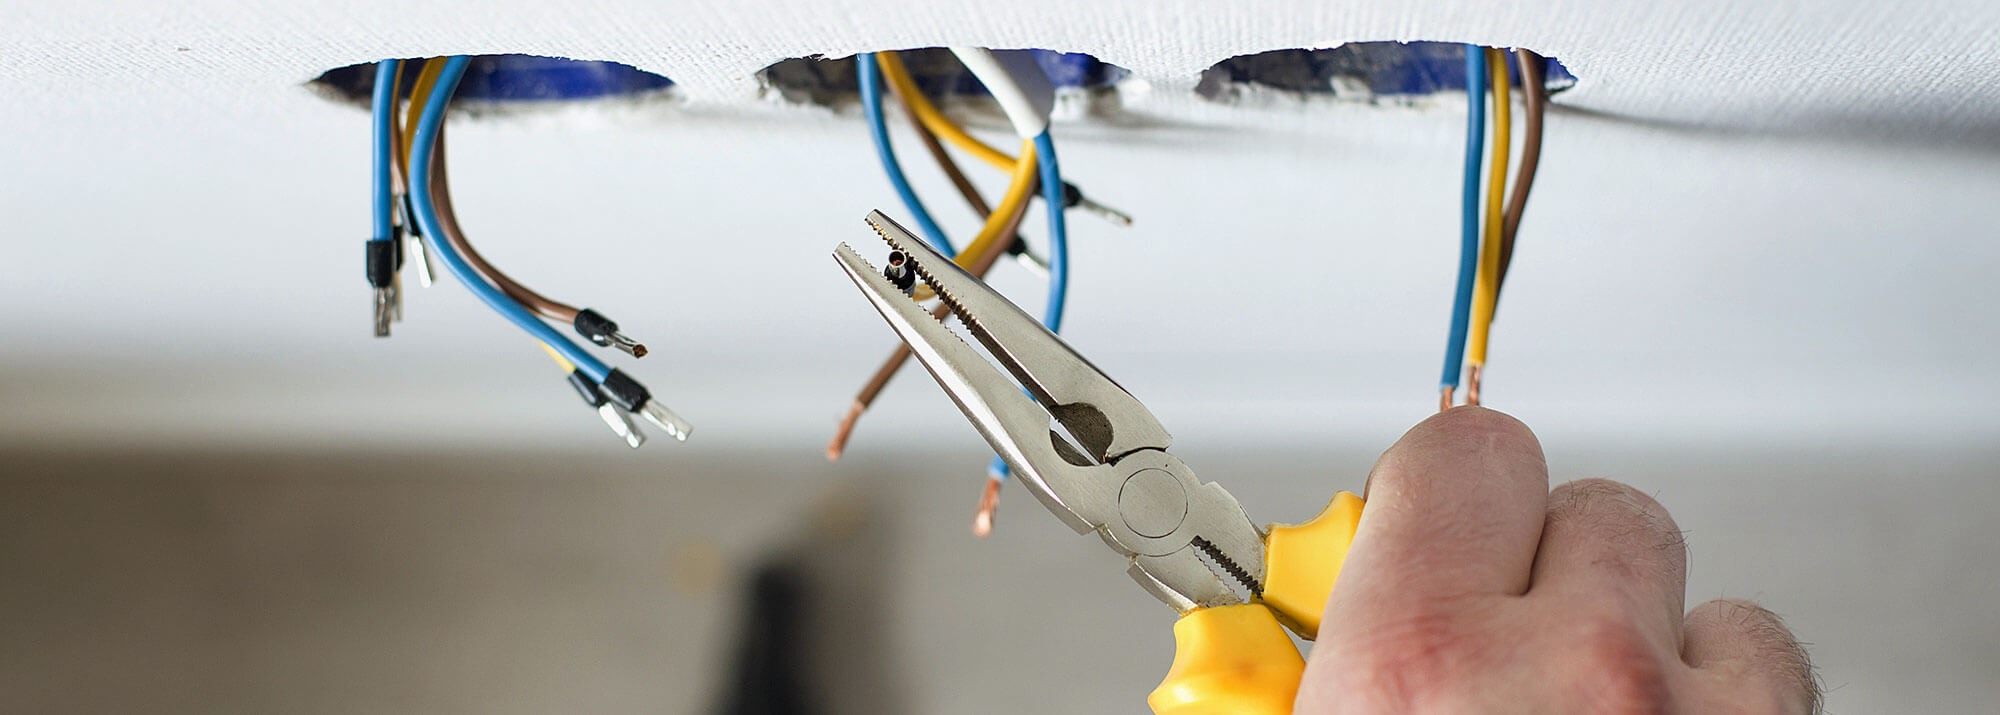 hight resolution of wichita electricians residentail and commercial service reddi wiper wiring1jpg